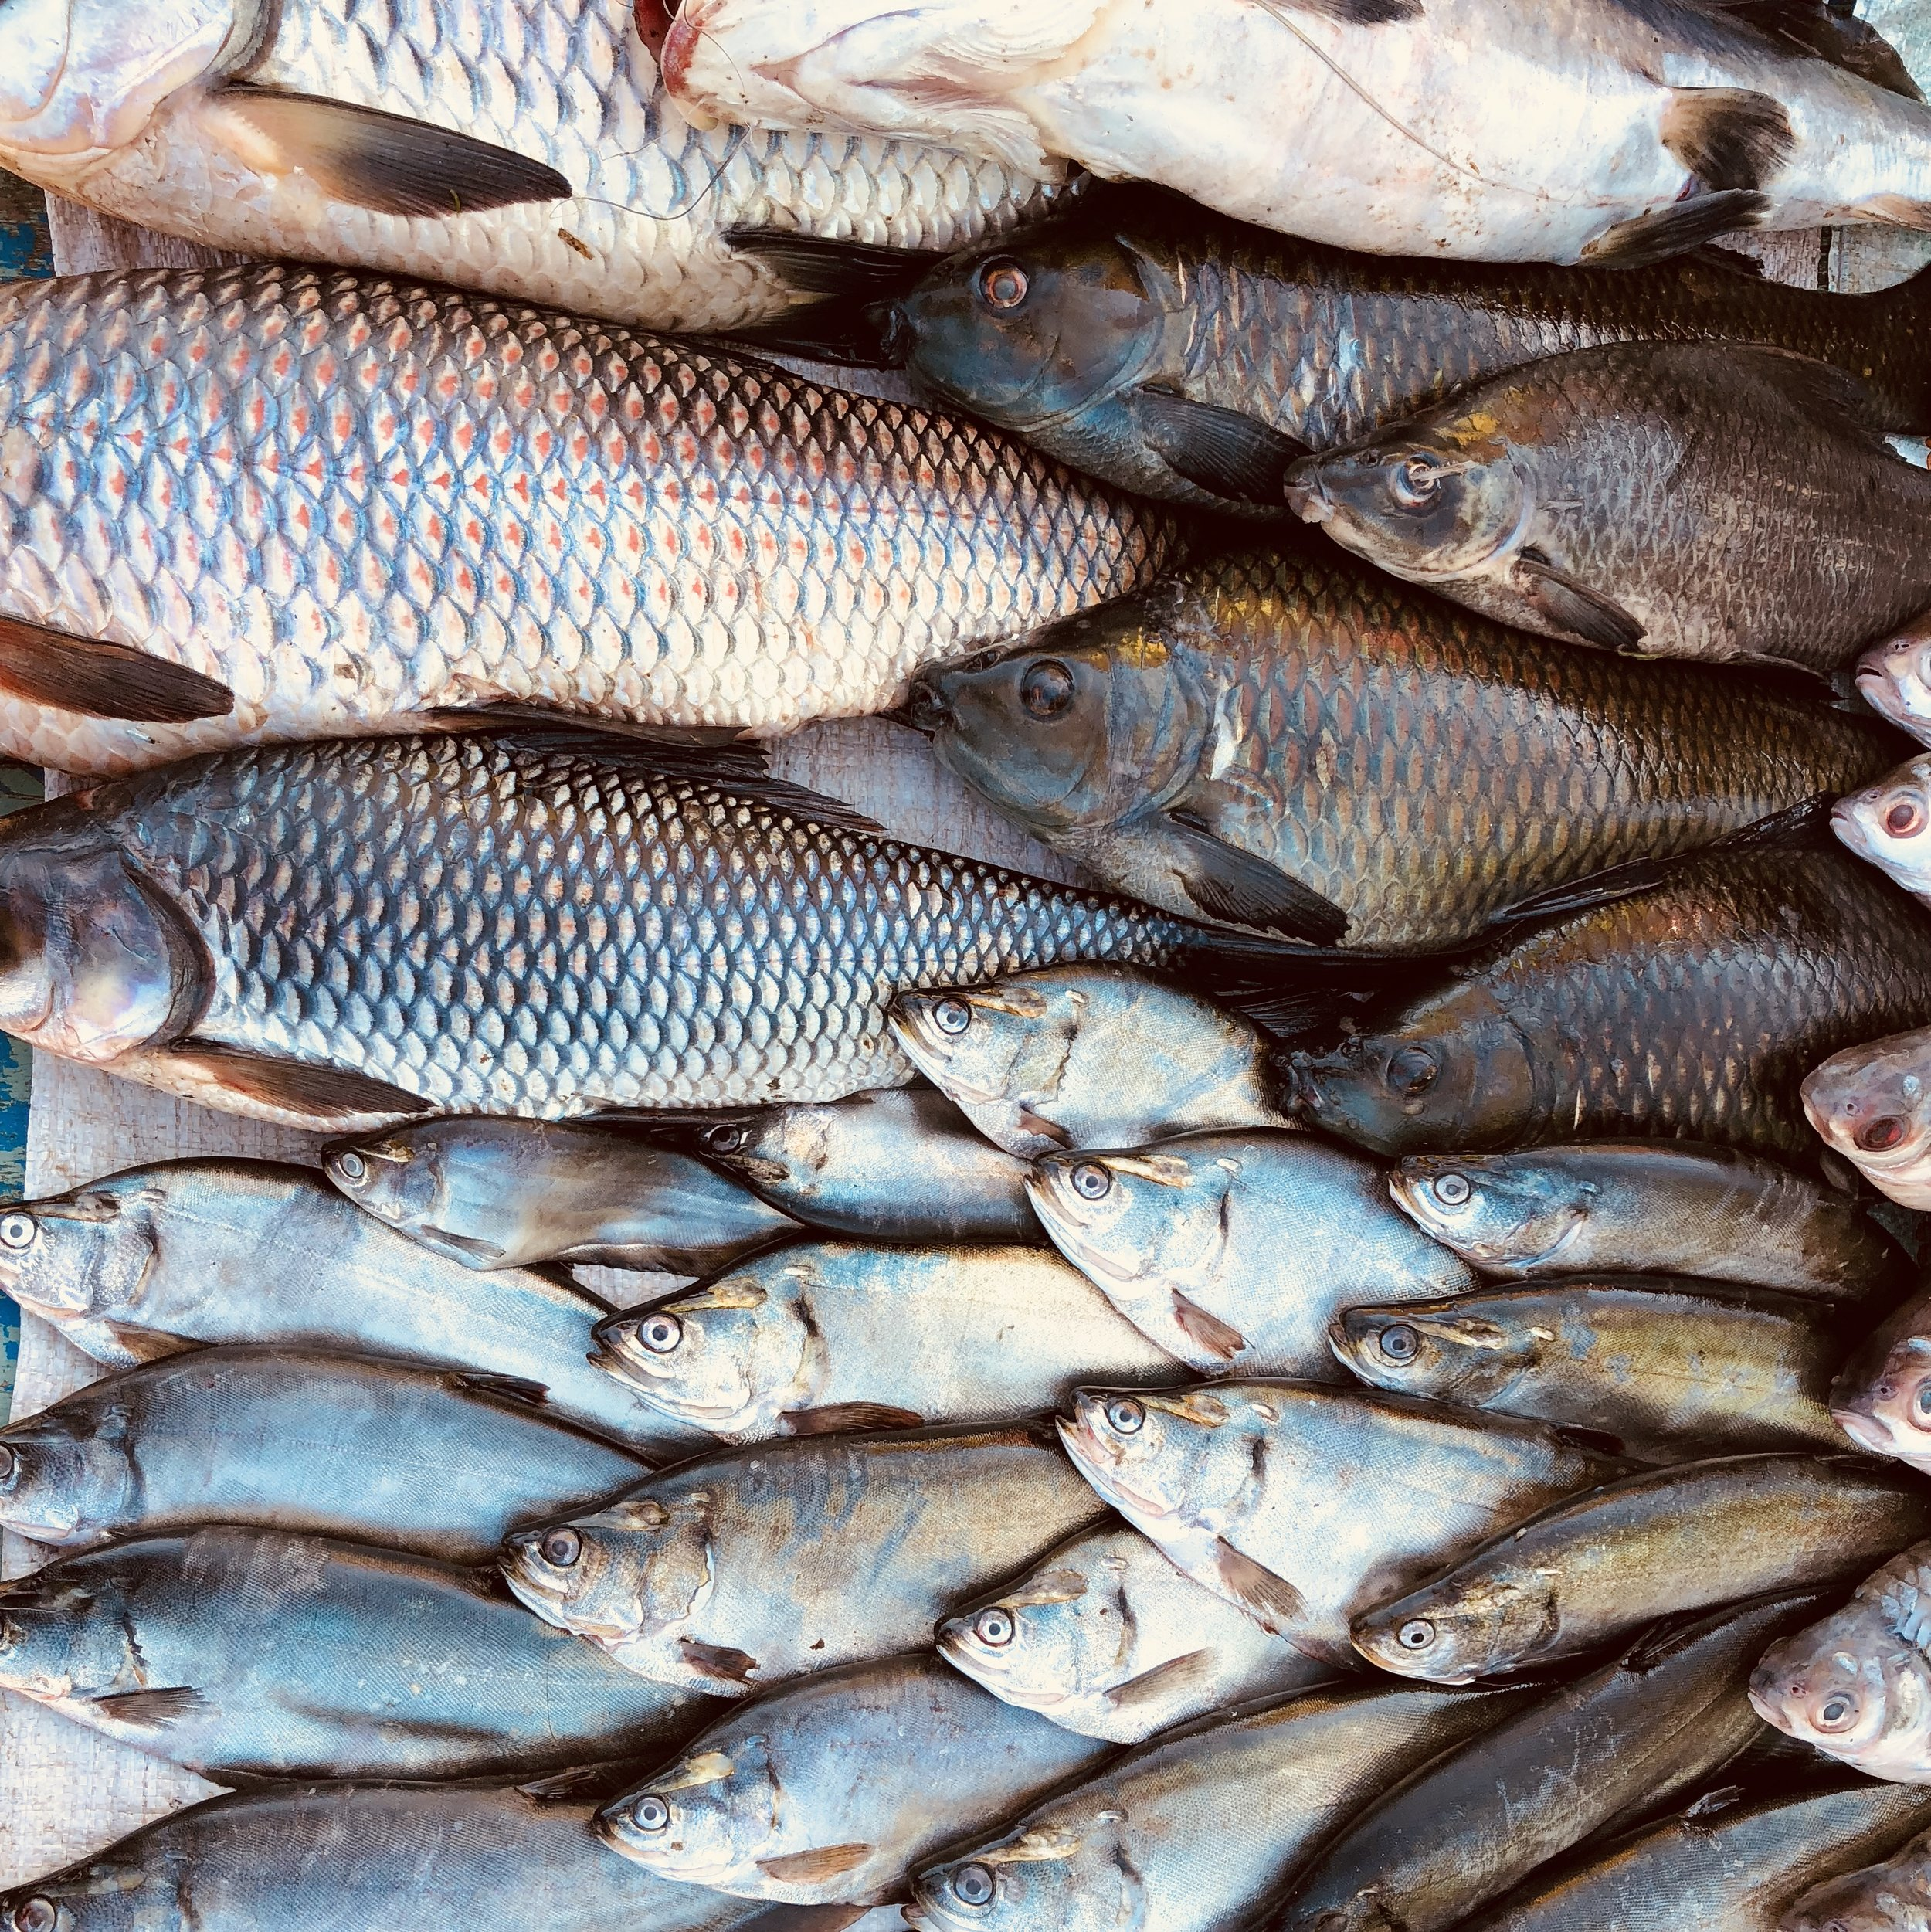 Lake Indawgyi fuels the local fish markets